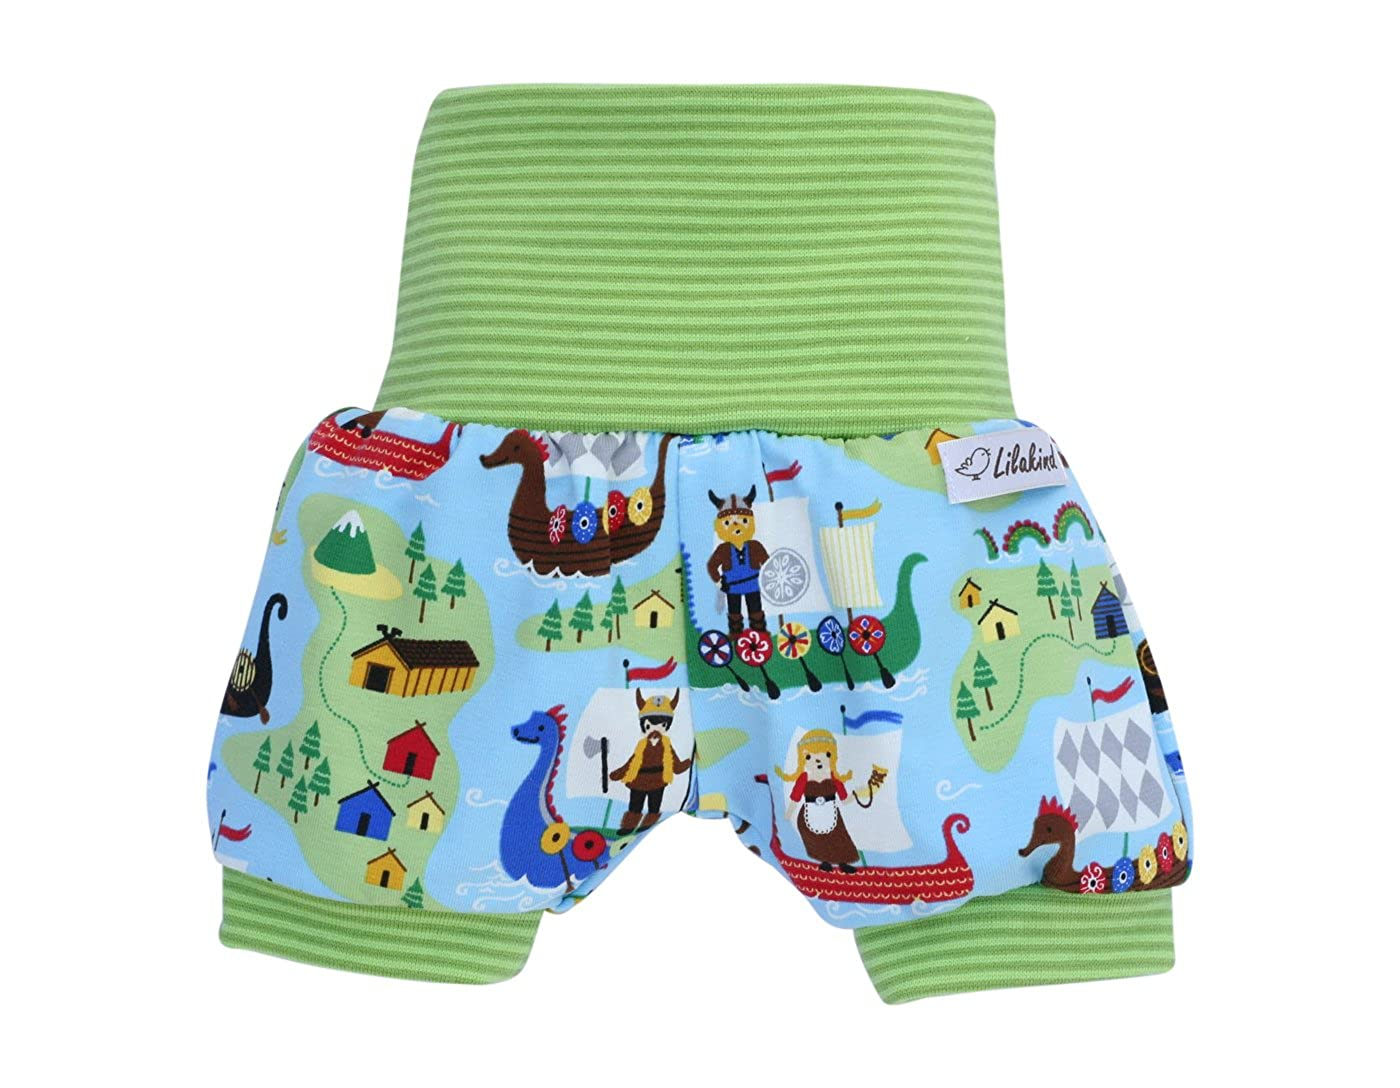 Lilakind Kurze Jungen Pumphose Shorts Buxe Sommerhose Wikinger - Made in Germany